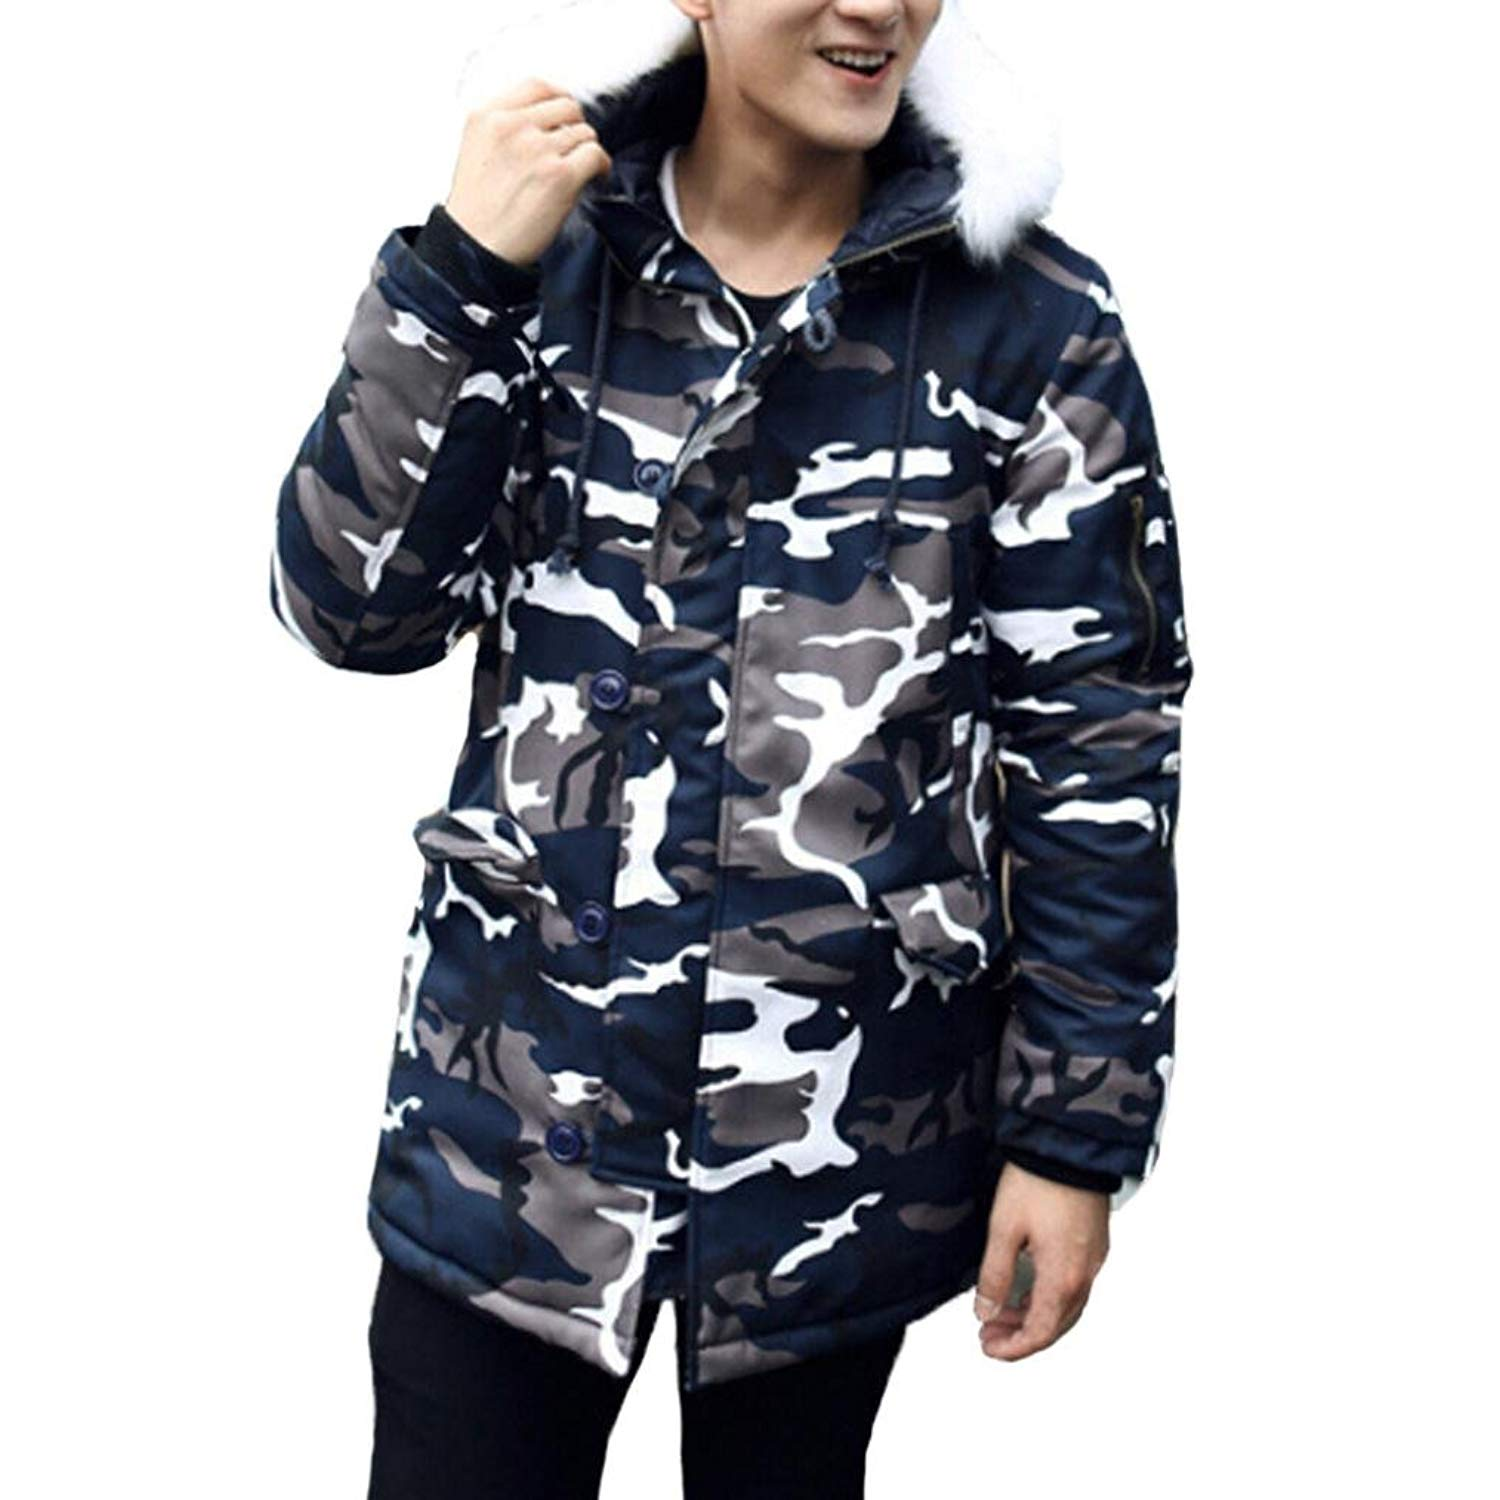 d7ea3d6e9 Get Quotations · Warm Coat,Men Fashion Camouflage Winter Coat Thickening Jacket  Winter By Orangeskycn